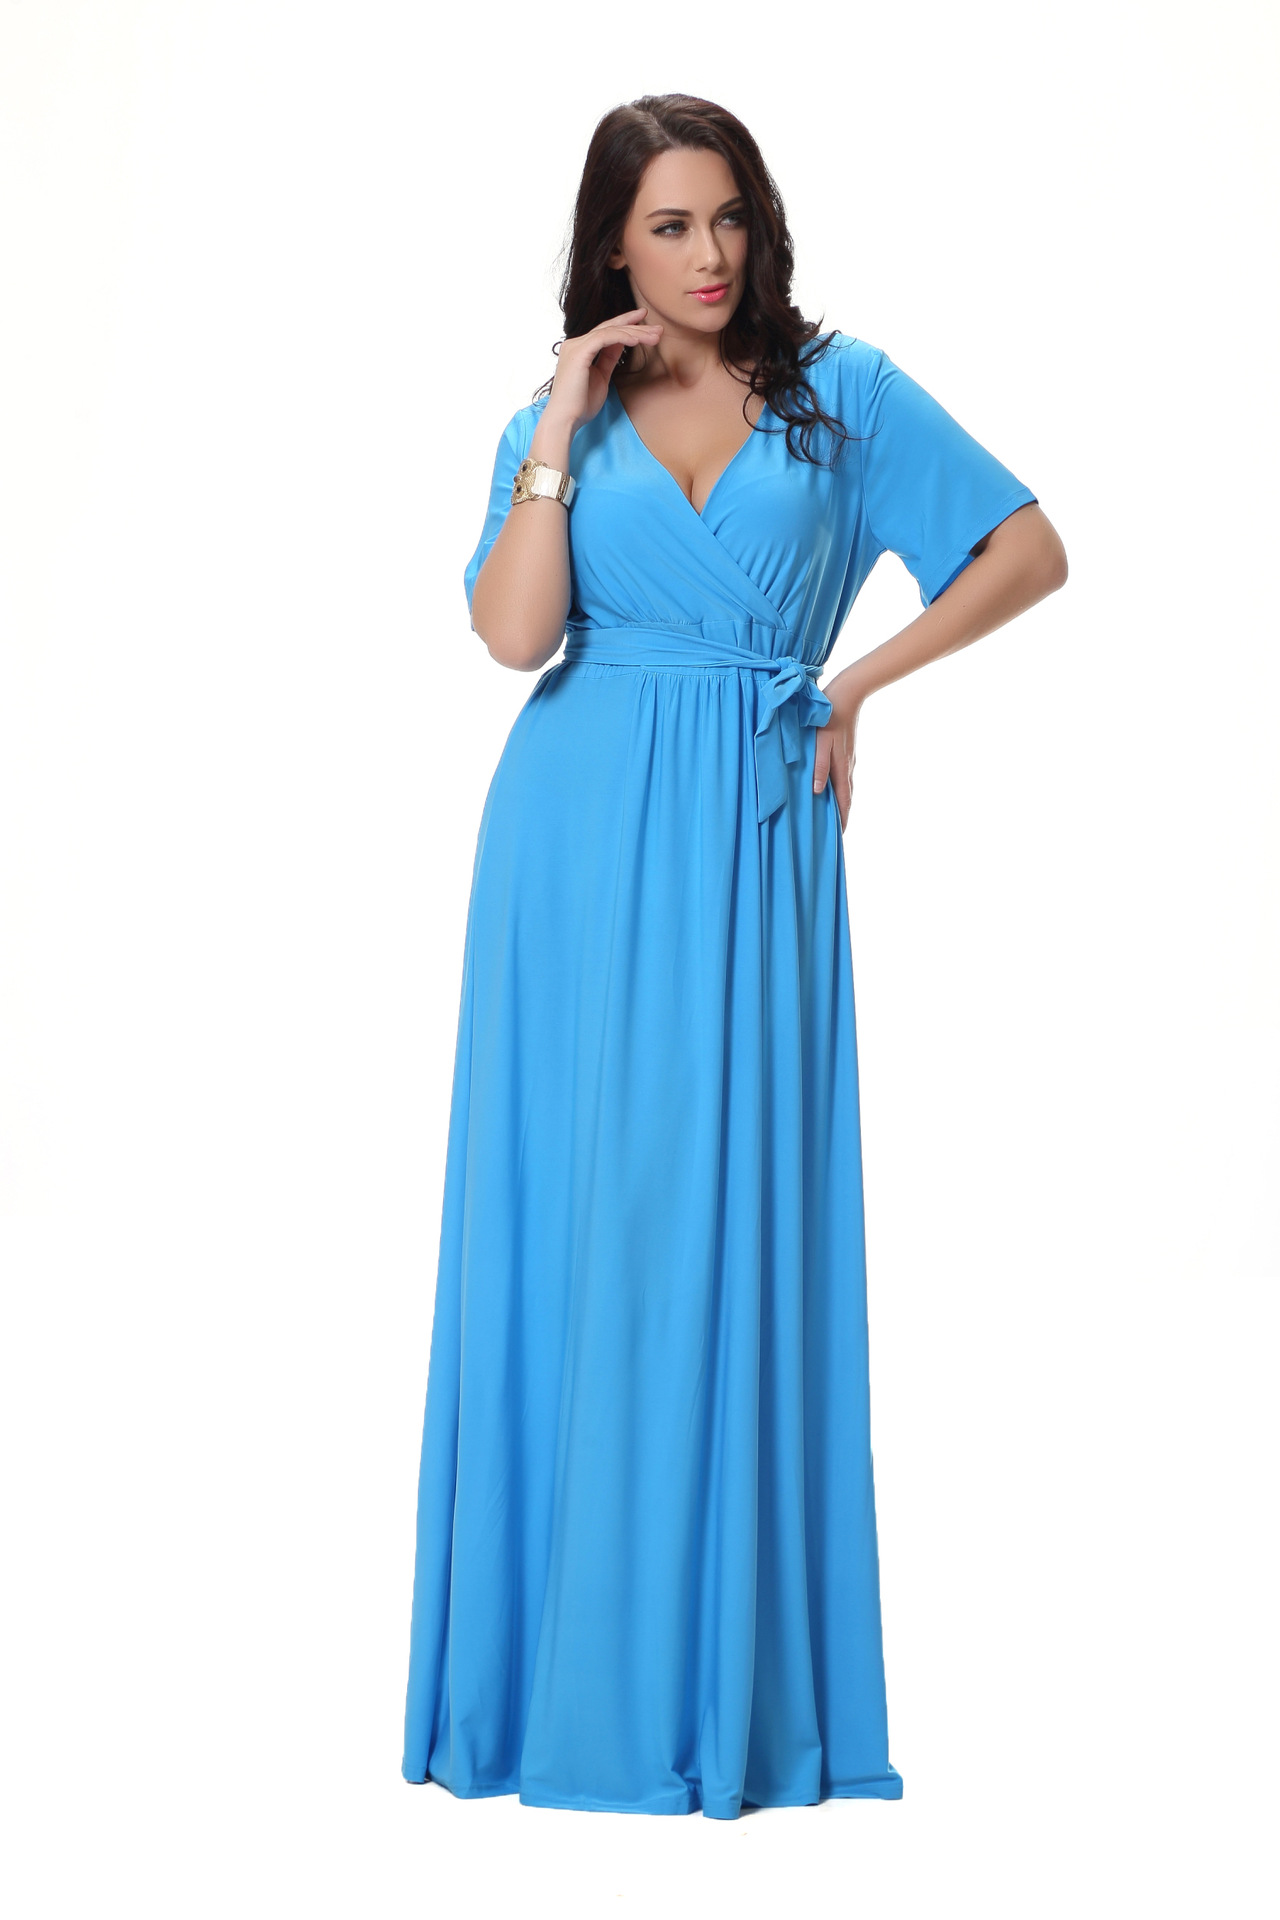 Colorful Party Dresses Plus Size Women Gift - All Wedding Dresses ...